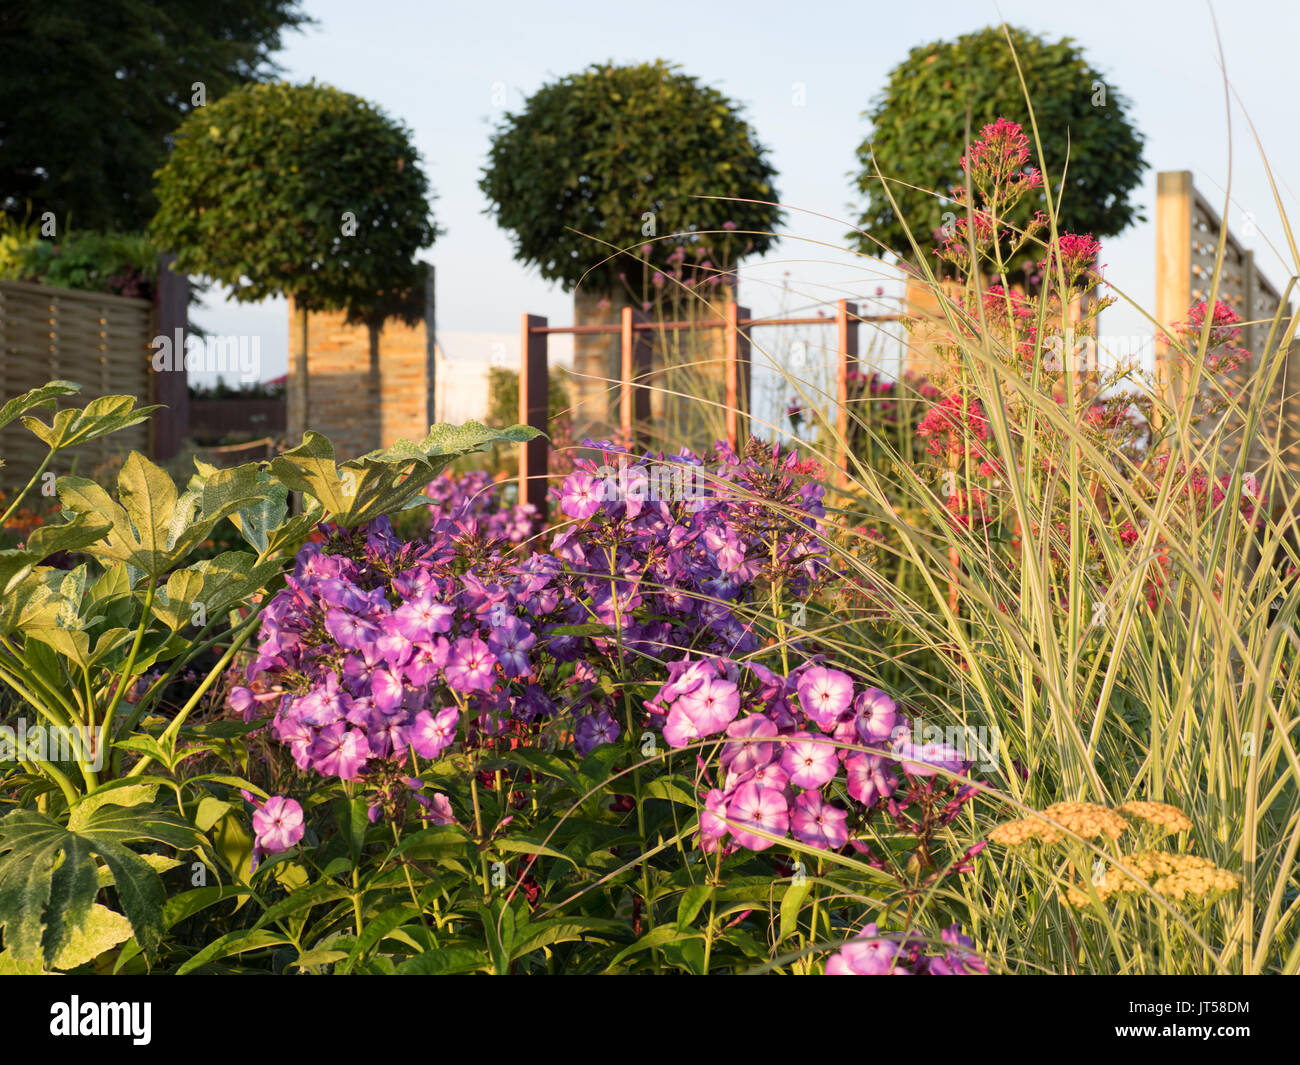 Pip Probert show garden 'For the Love of it' at the 2017 RHS Tattoo Flower Show.  A lawn leads into a colourful Stock Photo